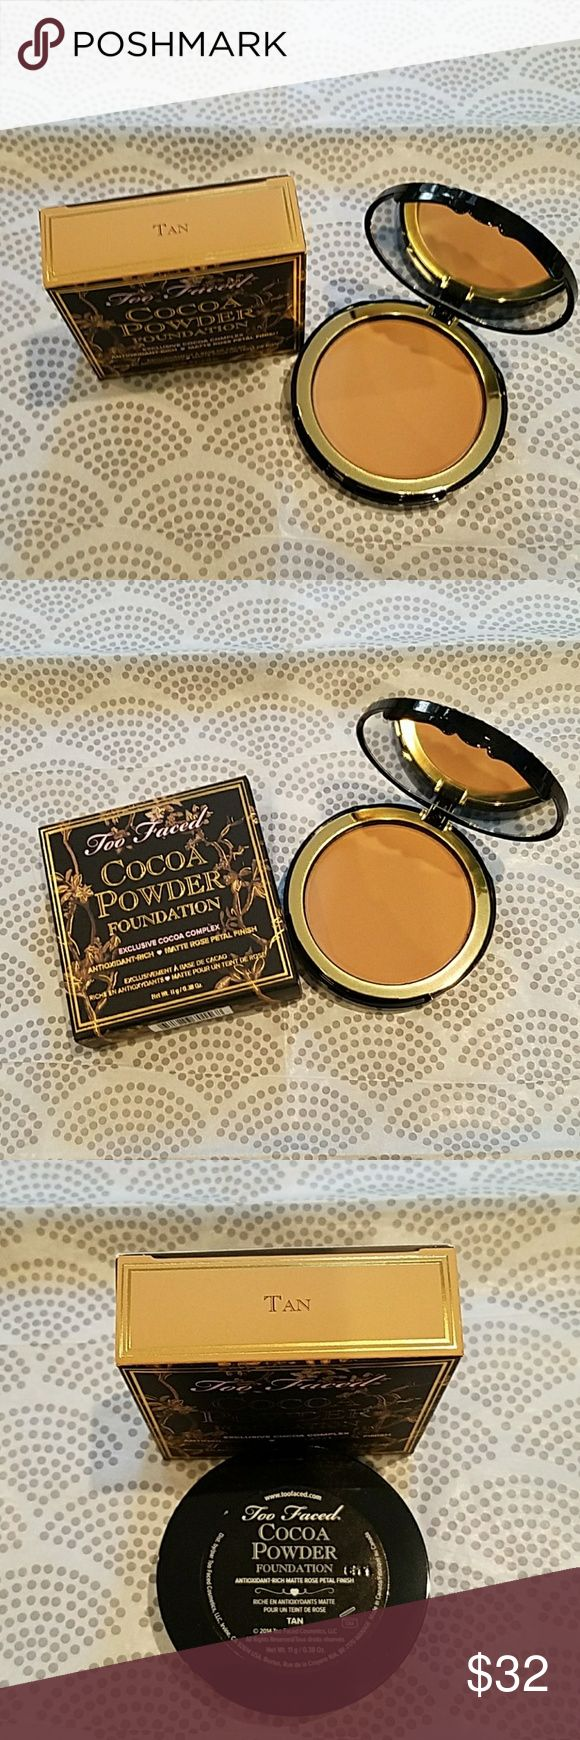 """Too Faced Cocoa Powder Foundation *TAN*A fan fave 5 star rated powder foundation with over 600 reviews on the Too Faced site. Such a great, buildable medium to full coverage foundation. Matte but never dry """"rose petal"""" finish, oil absorbing, and it smells delicious. Diminishes, and won't settle into fine lines and wrinkles. This brand is cruelty freeyay! Too Faced Makeup Foundation"""